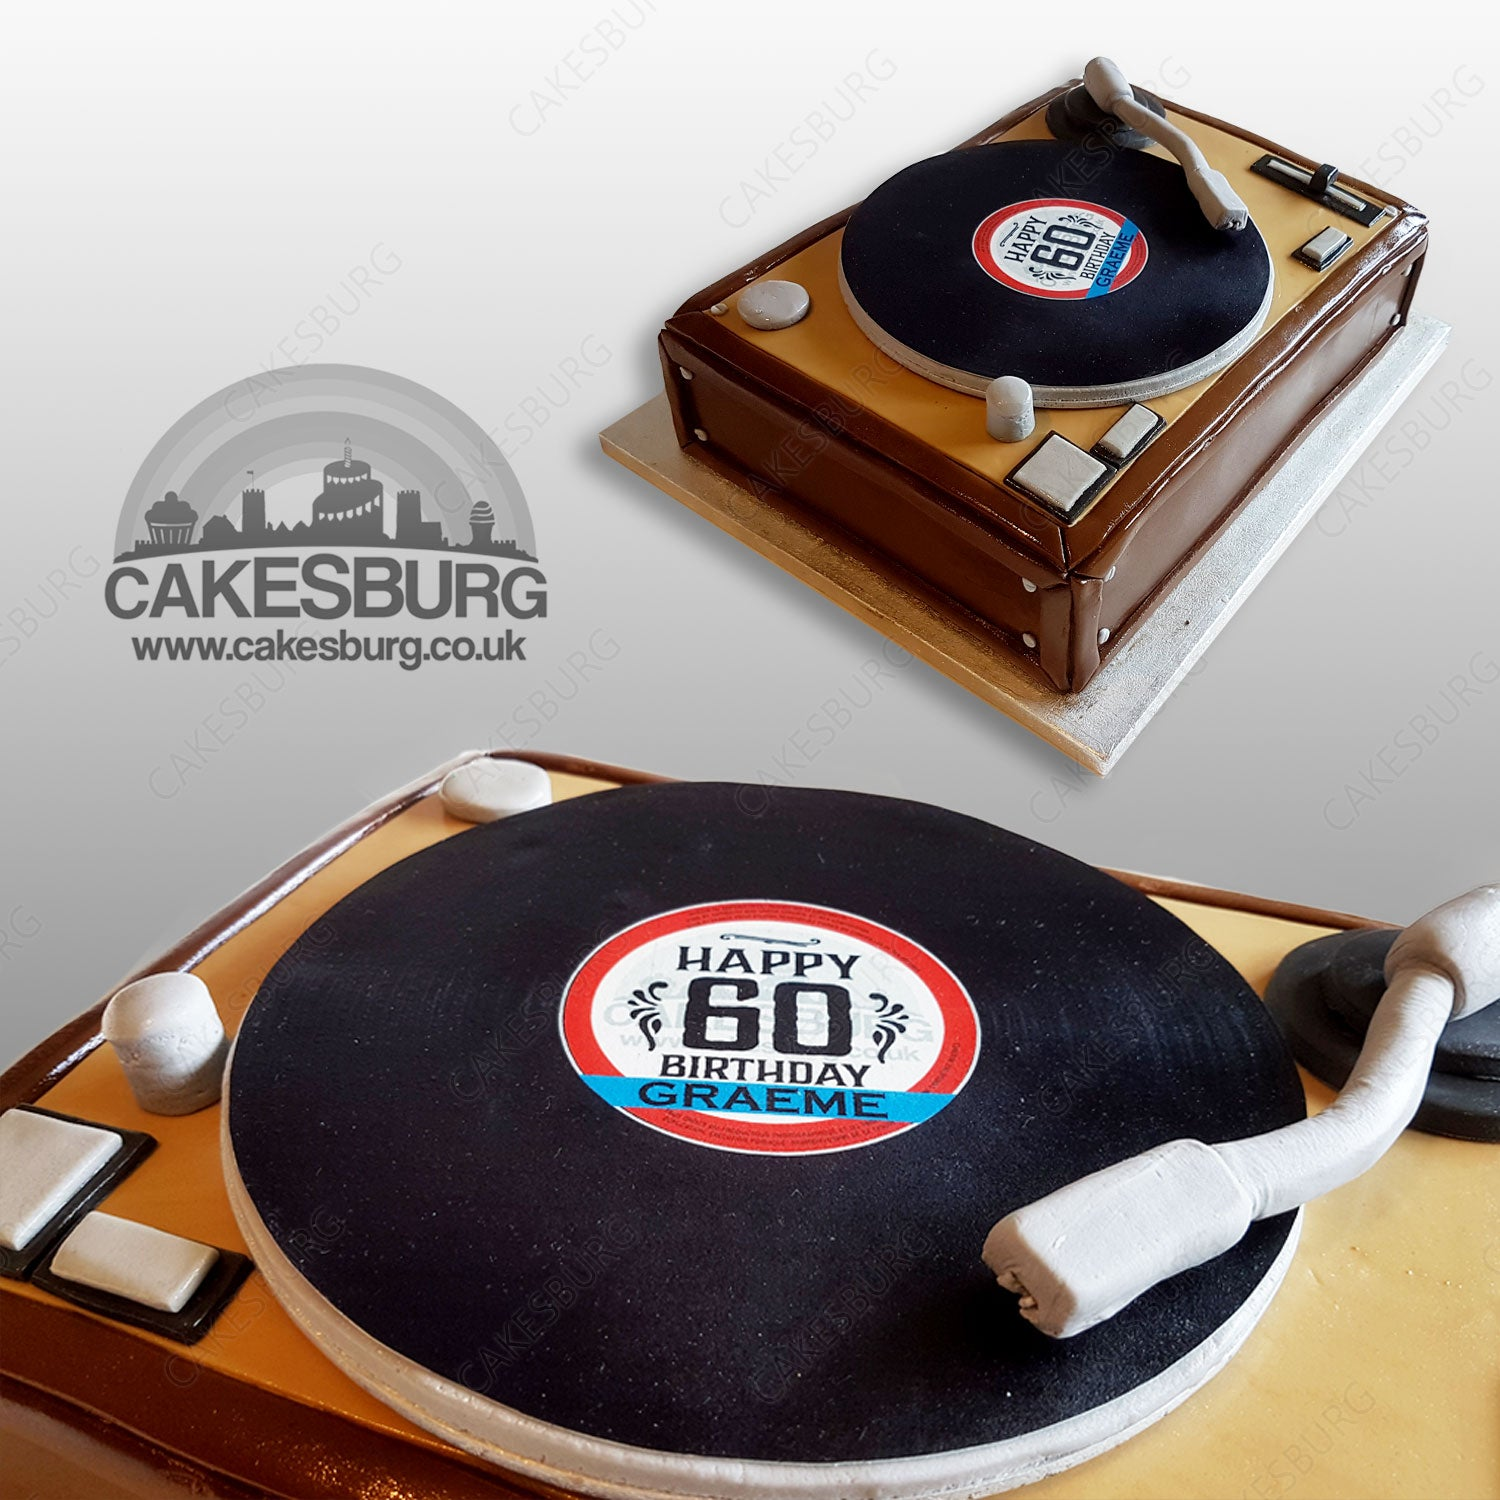 Peachy Audiophile Turntable Cake 1 Cakesburg Online Premium Cake Shop Birthday Cards Printable Benkemecafe Filternl